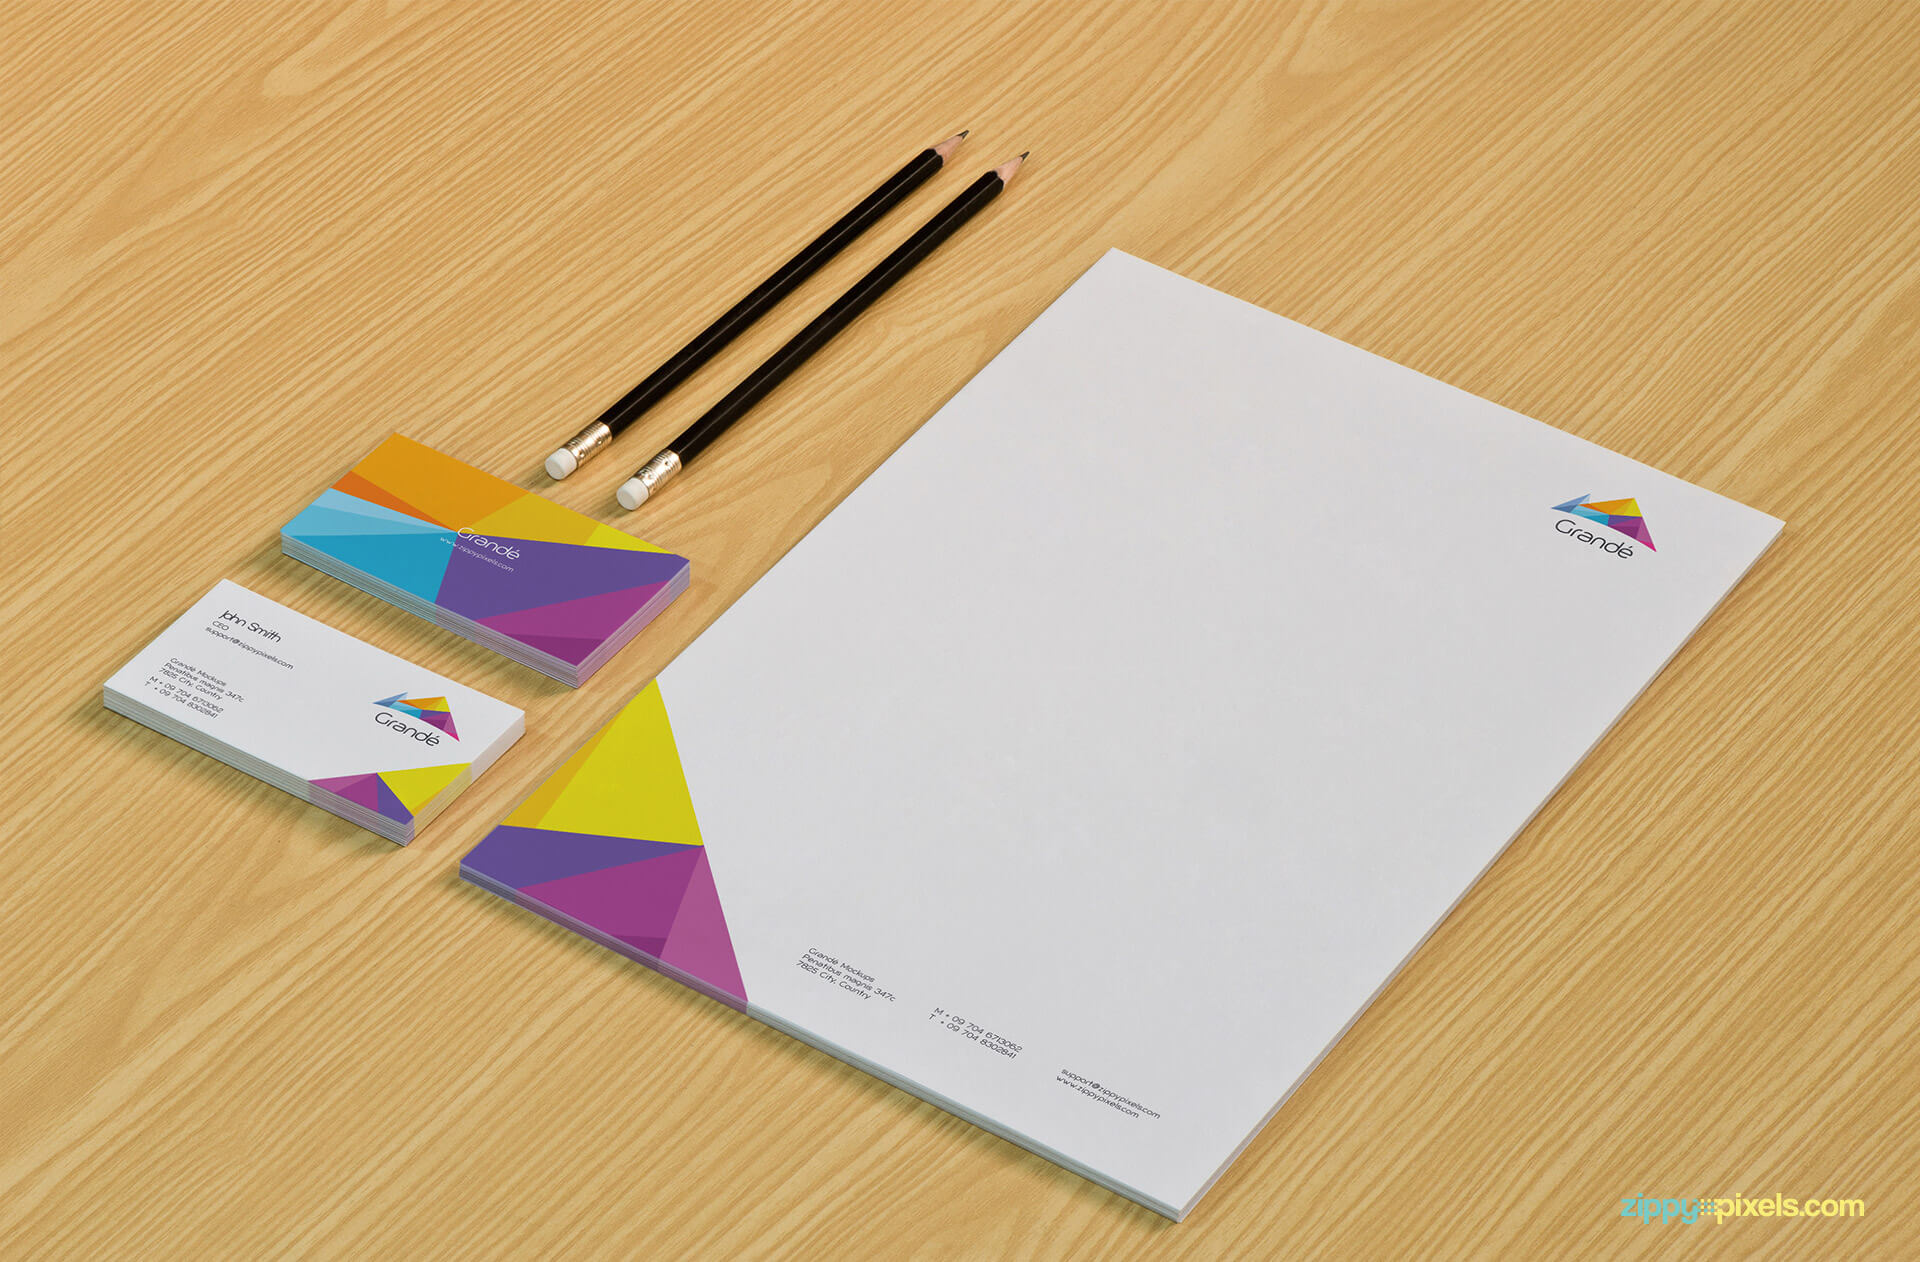 Stationery Brand Identity Mockup of Letterhead & Business Cards